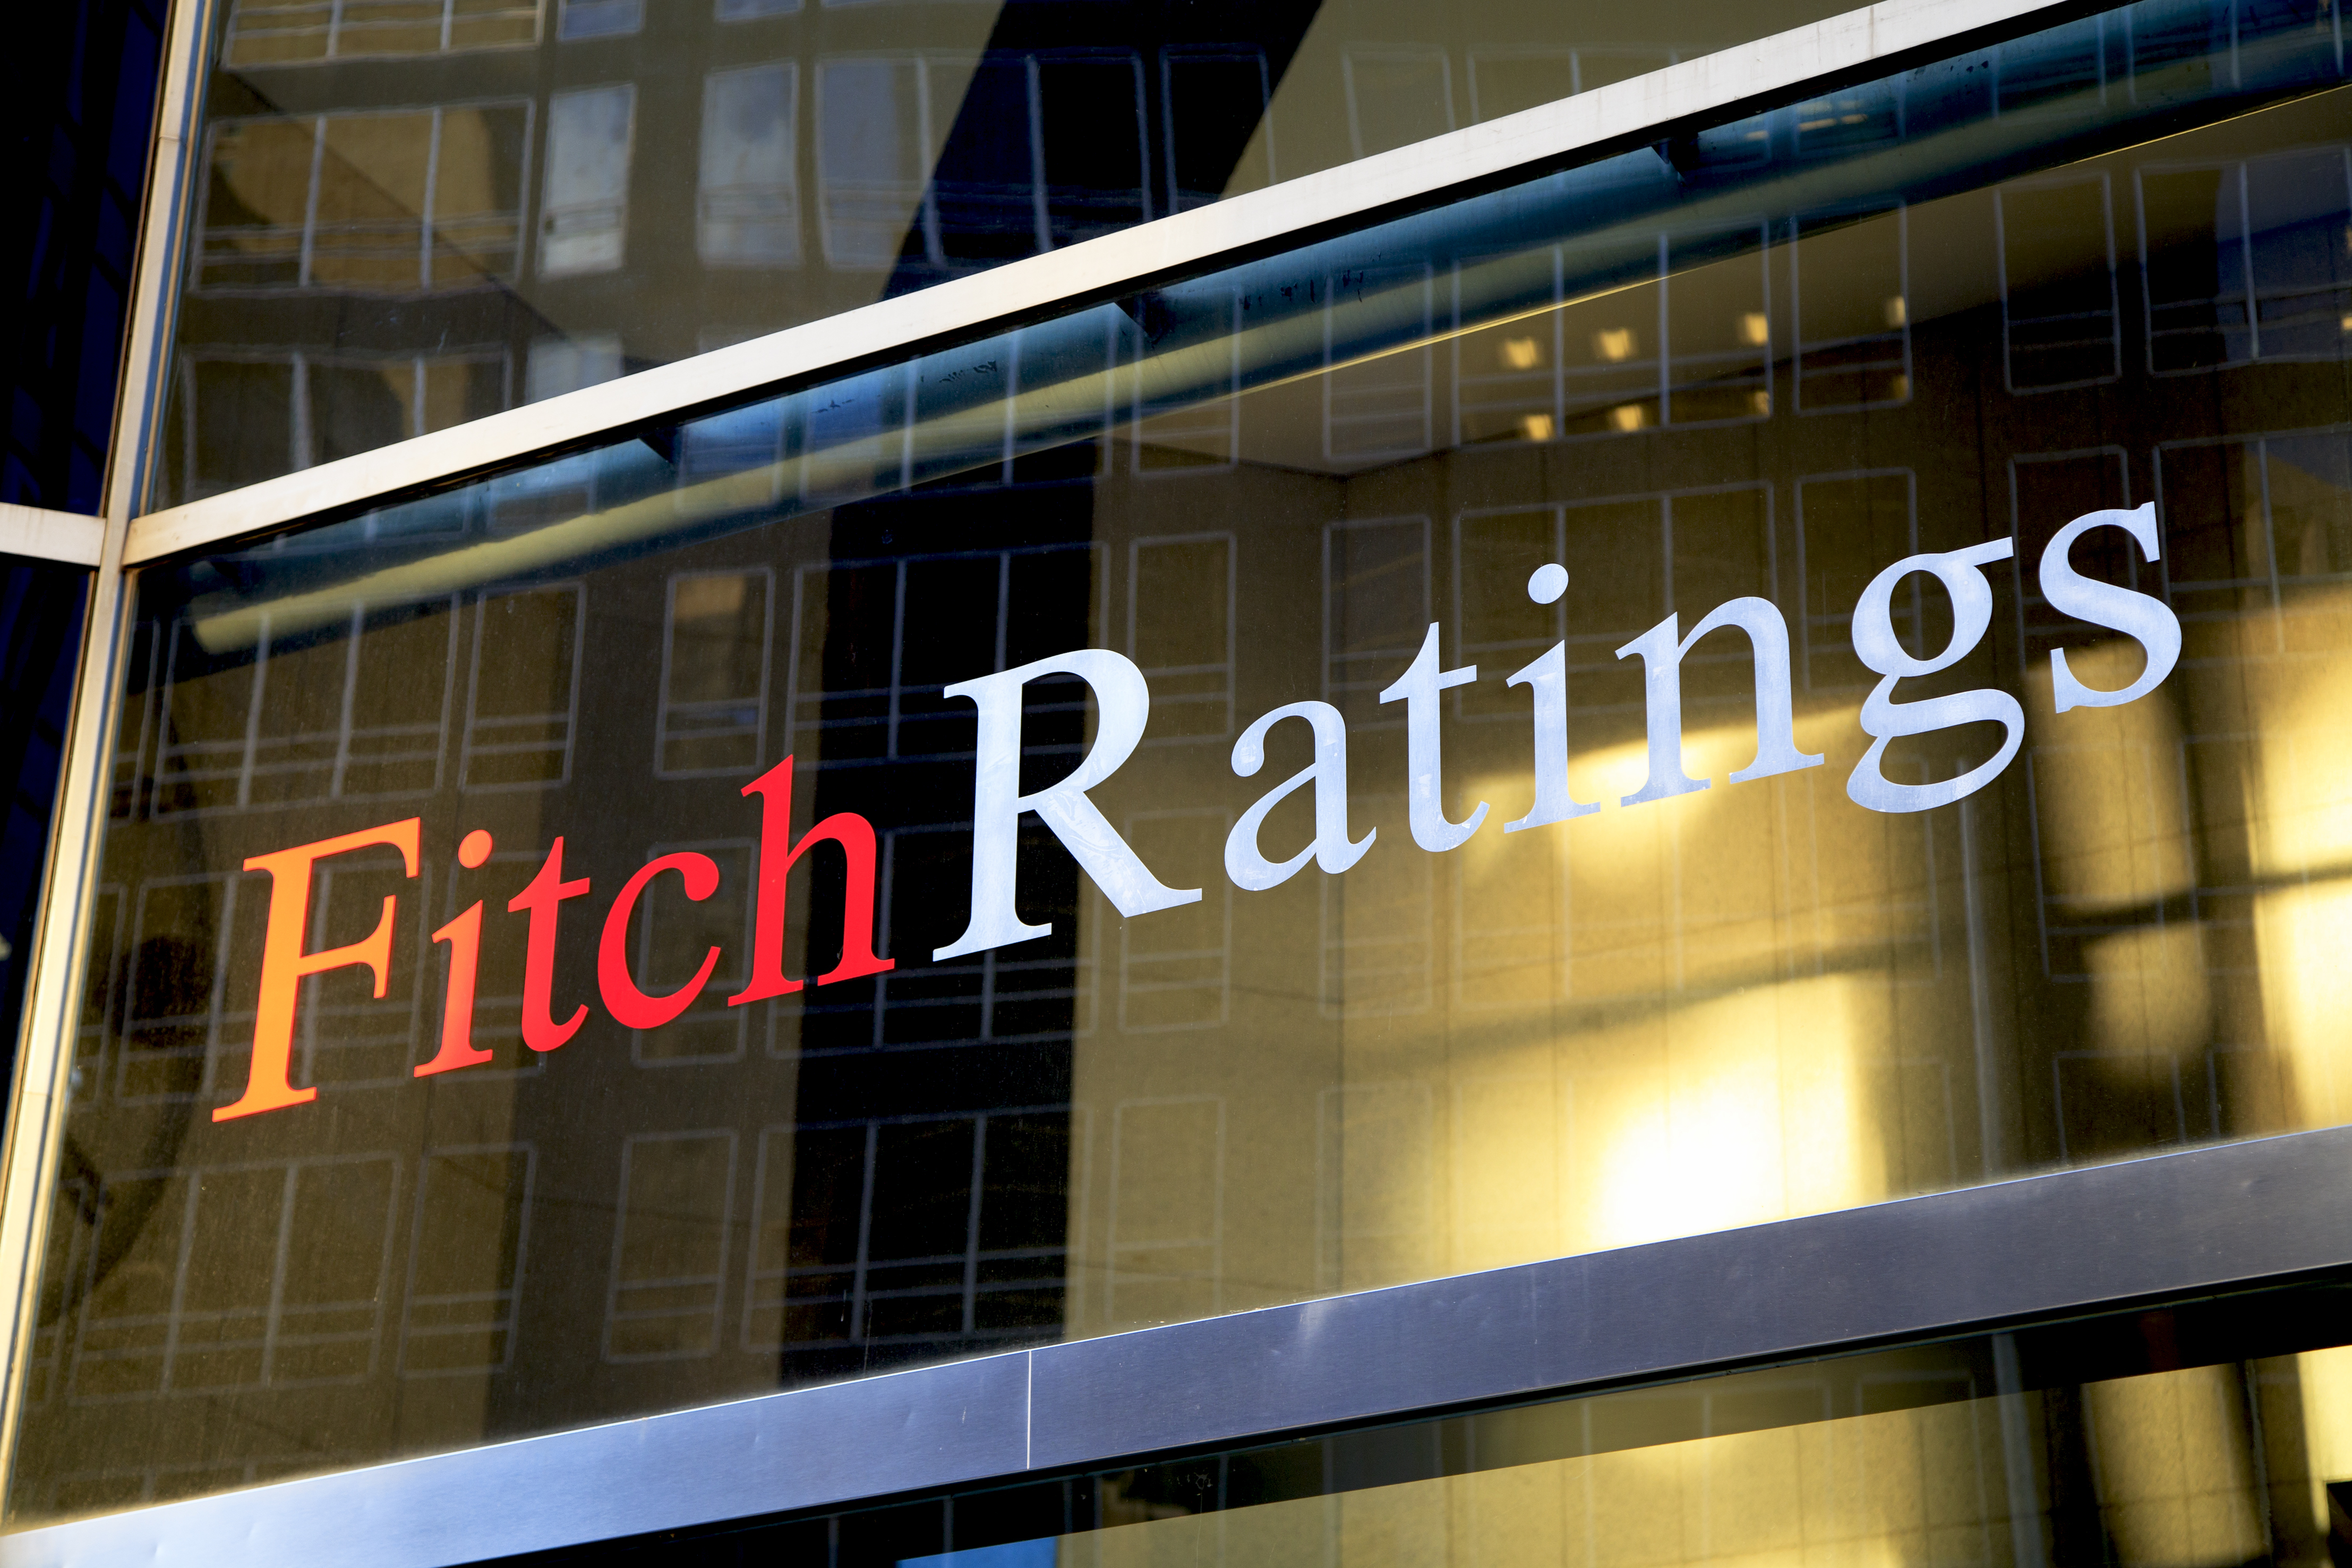 Fitch Ratings One Of The Three International Credit Rating Agencies Alongside Moody S And Standard Poor Has Upgraded Israel Long Term Foreign